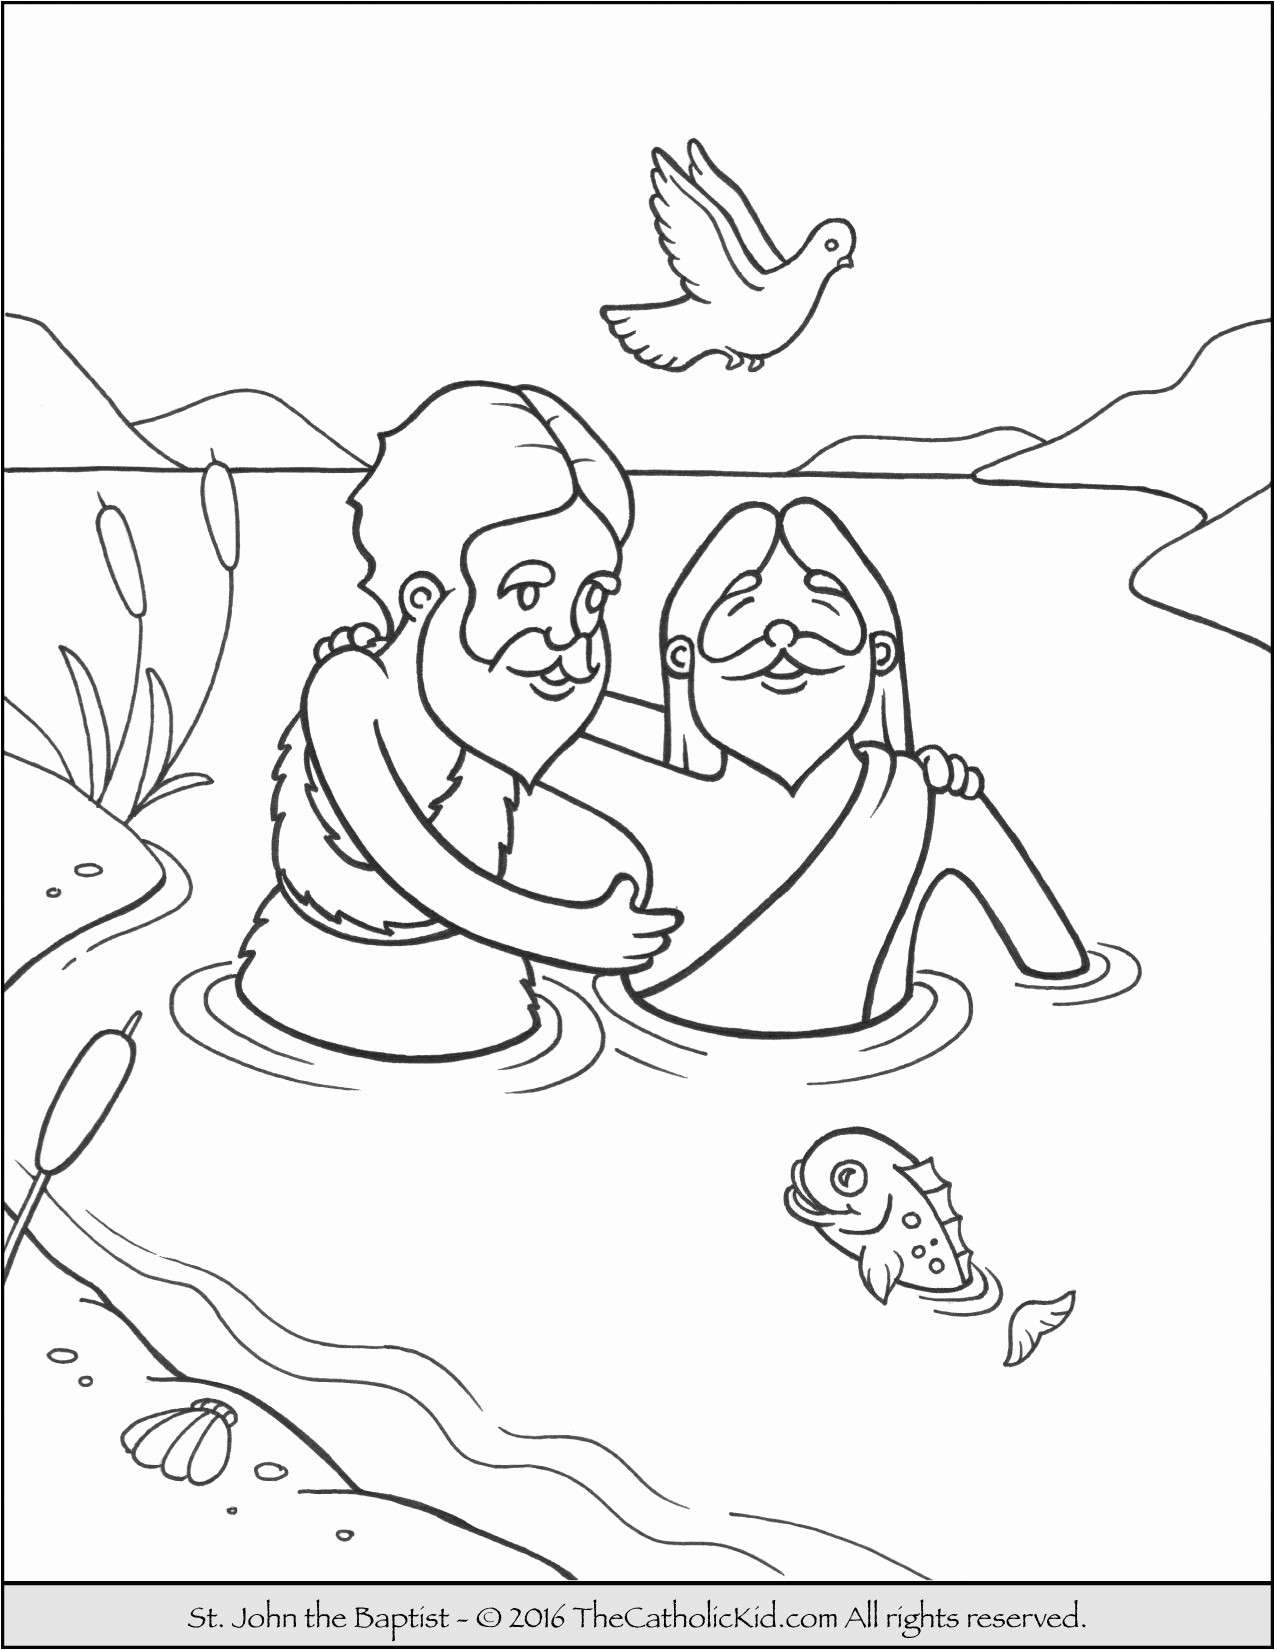 free disney princess coloring pages Collection-Disney Coloring Pages Rapunzel Disney Princess Coloring Pages Rapunzel and Flynn Free Coloring 2-f